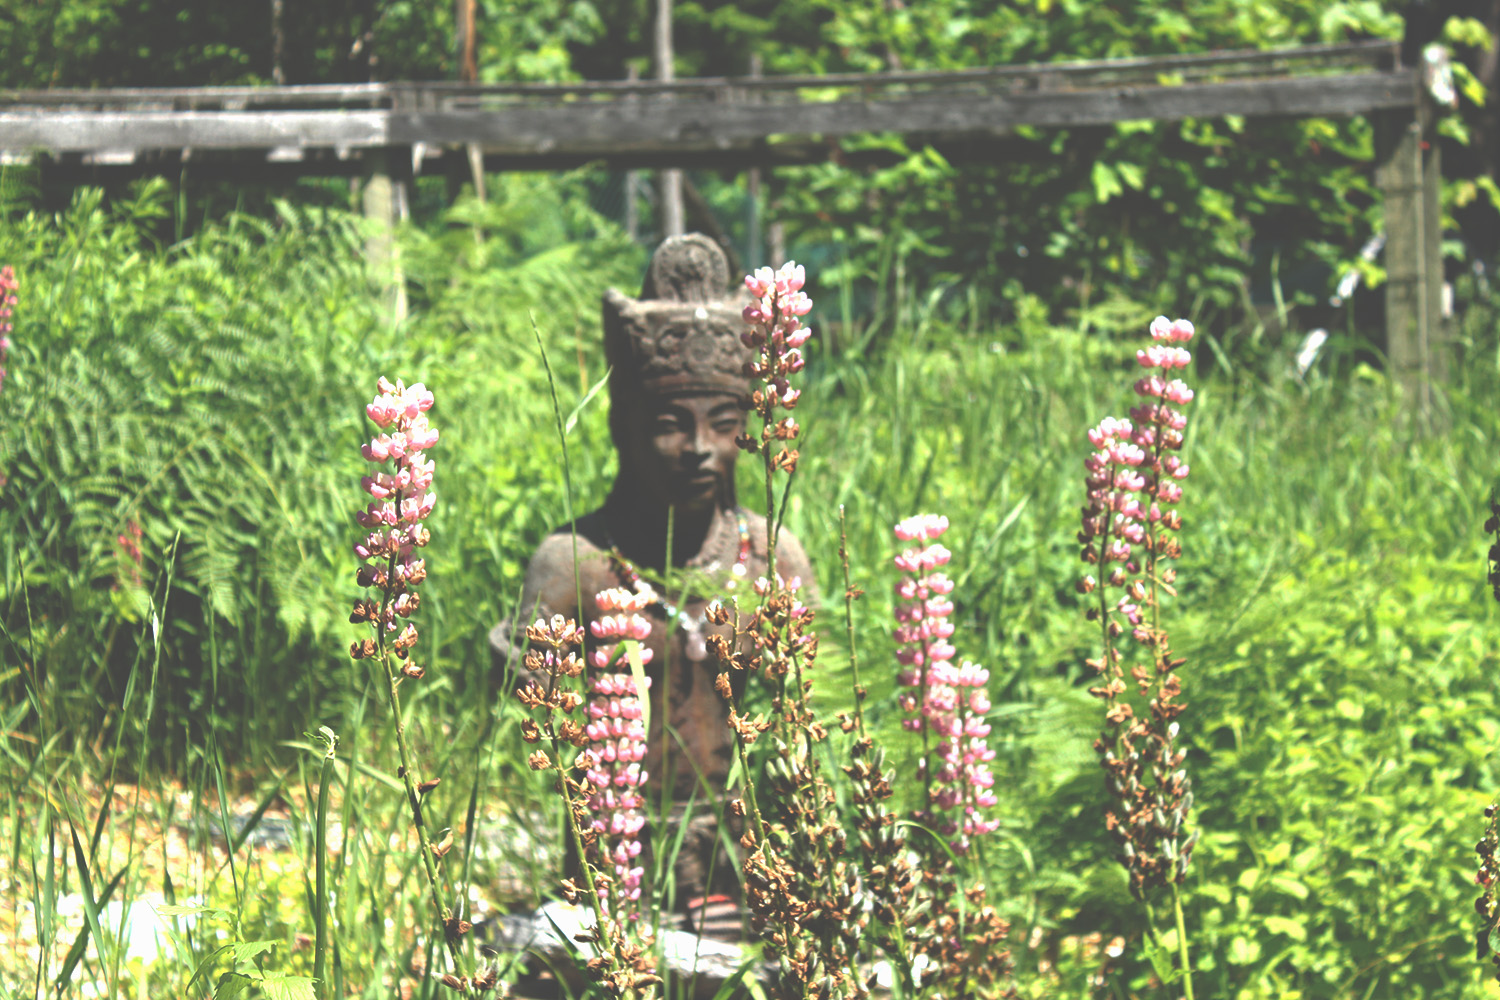 Statue sitting in herb garden